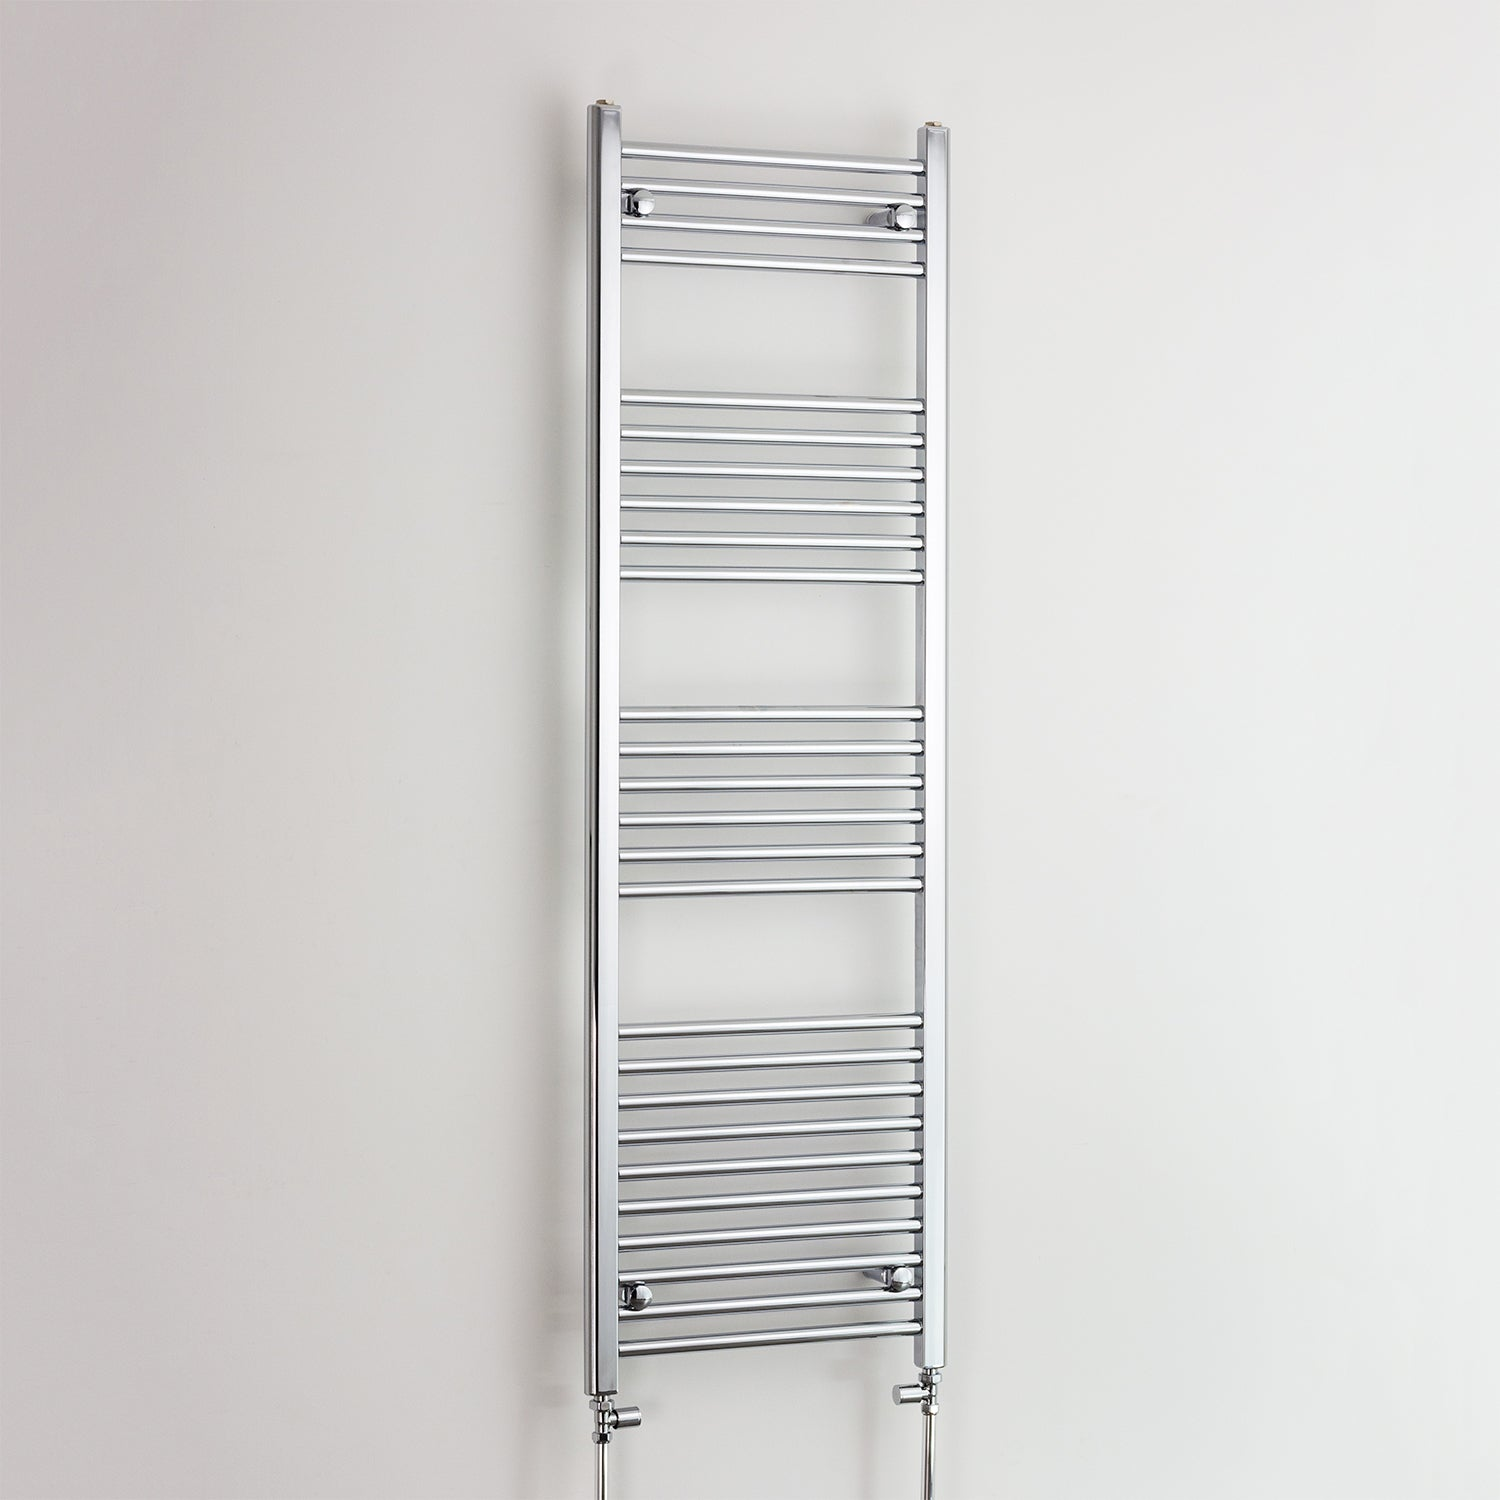 600mm Wide 1600mm High Flat Chrome Heated Towel Rail Radiator HTR,With Straight Valve